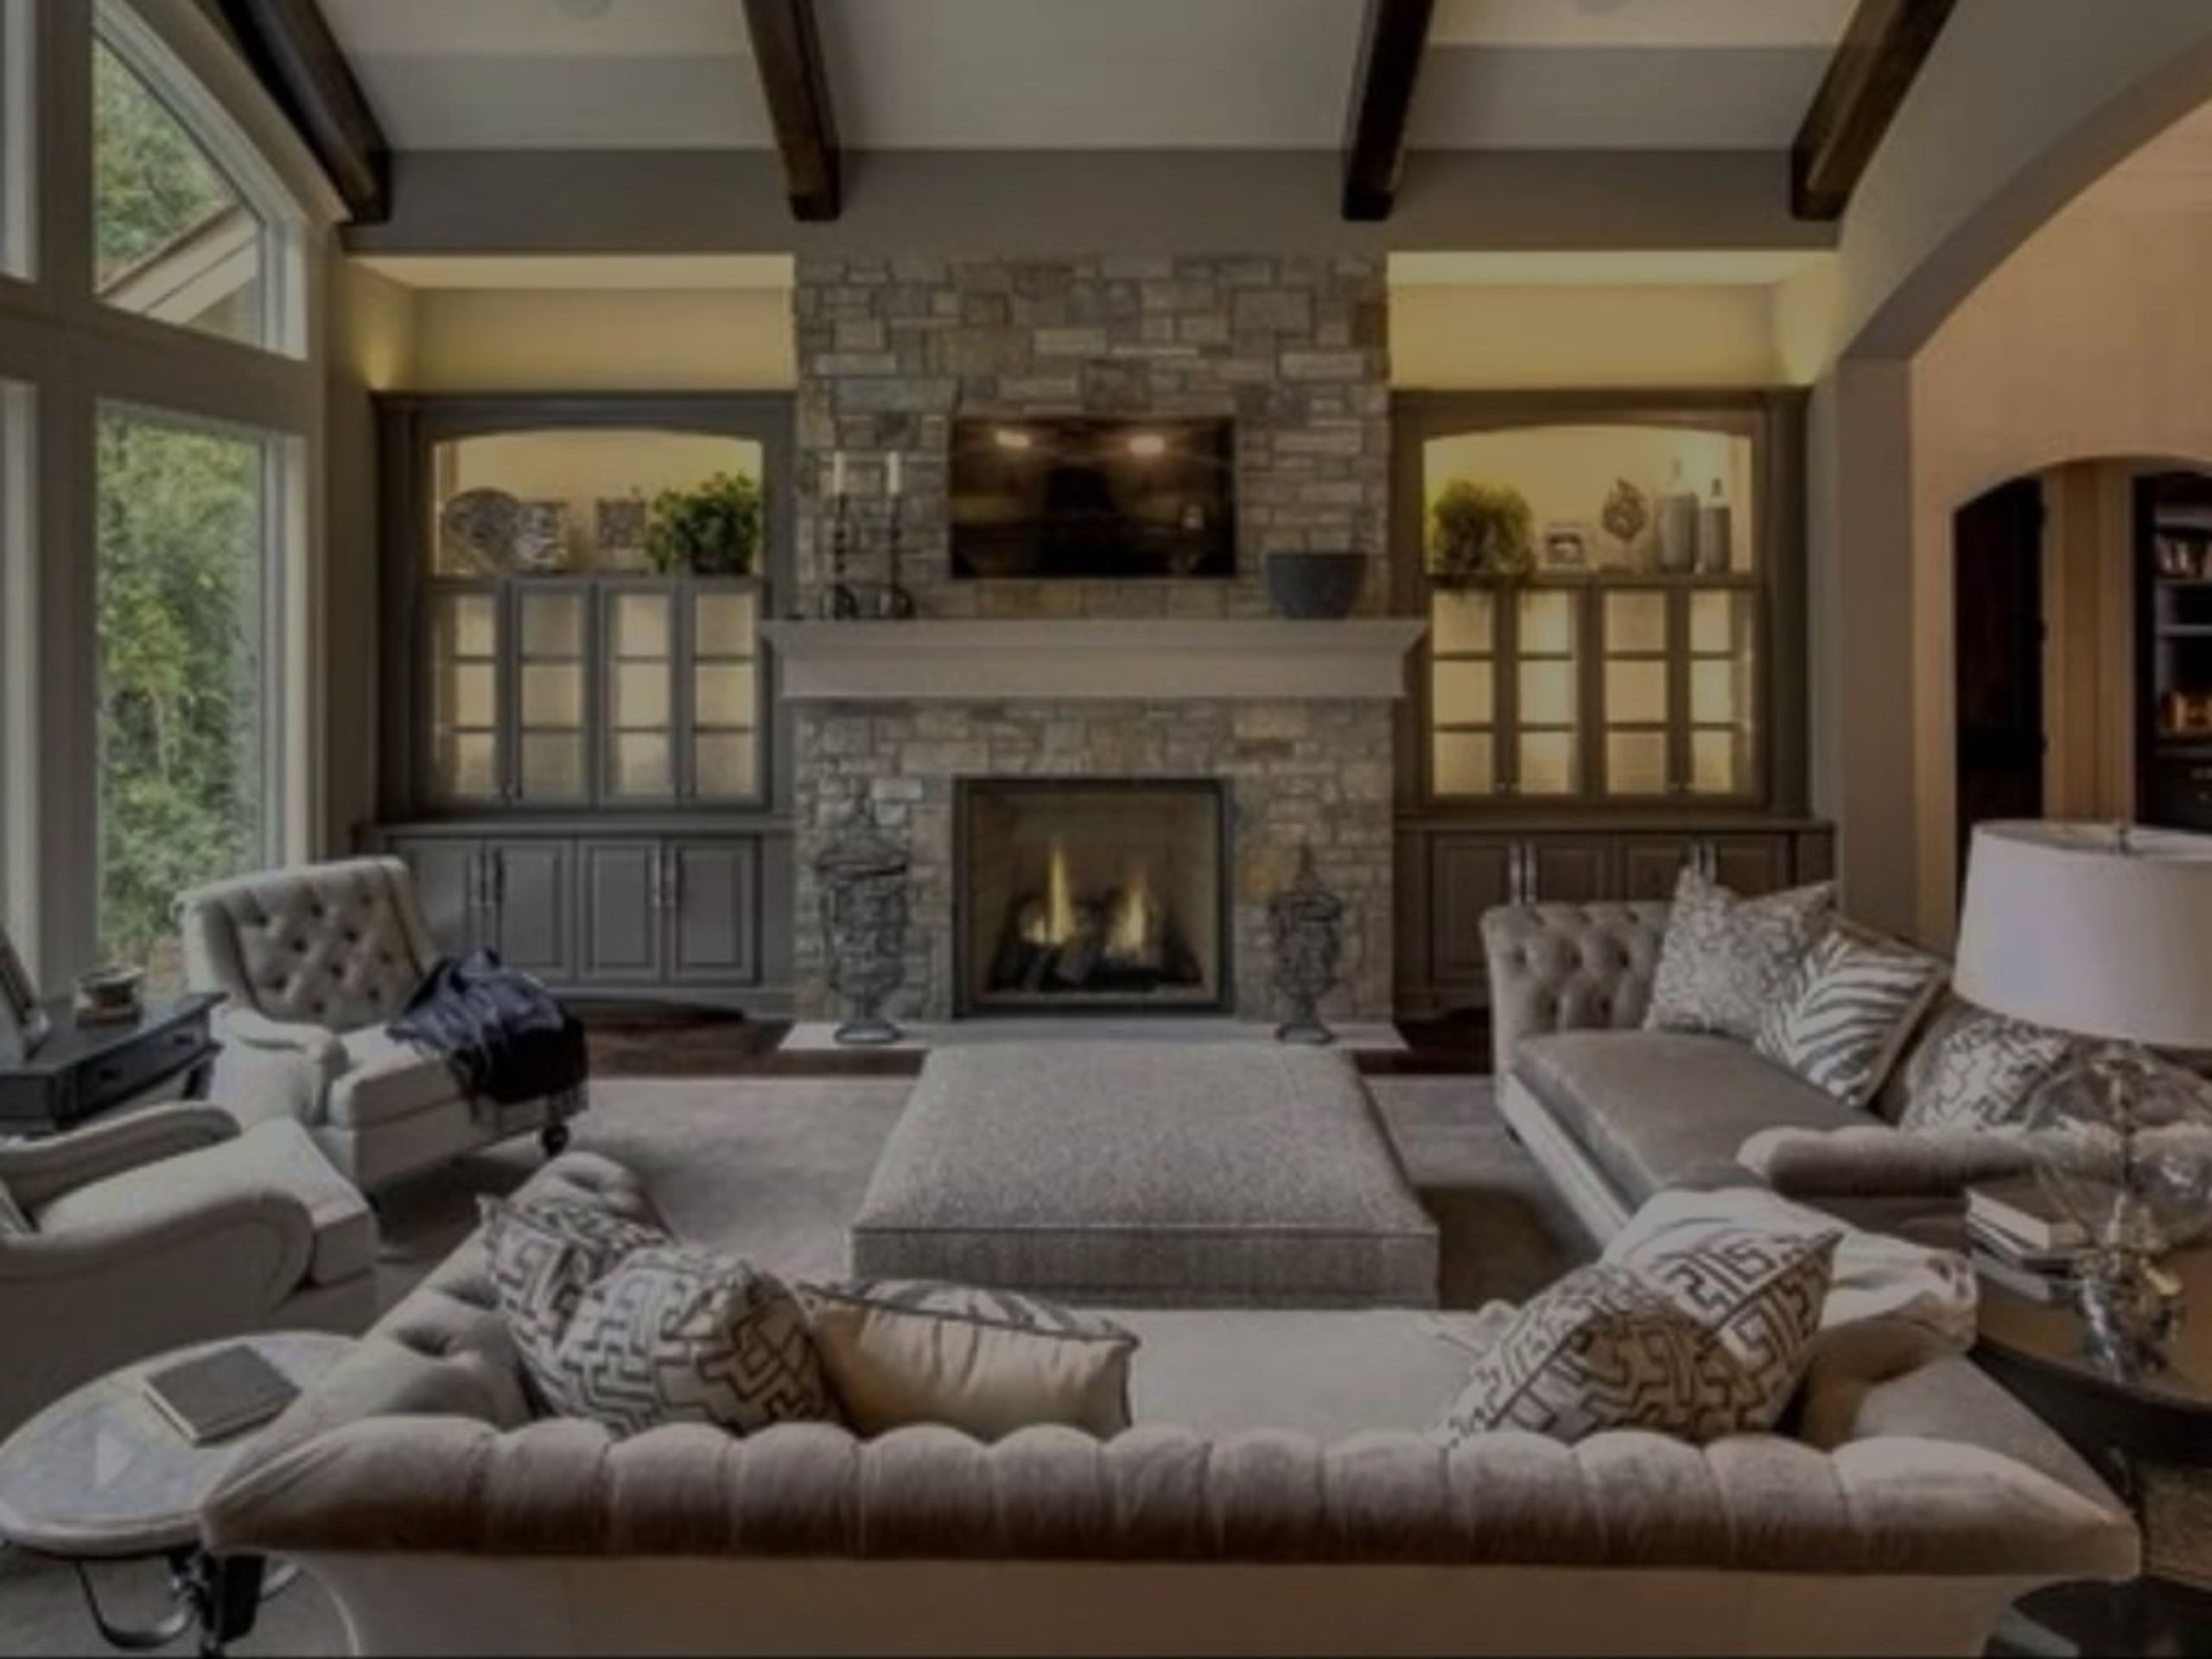 Dallas Texas Real Estate – 5 Ways to Add Wow to Your Home